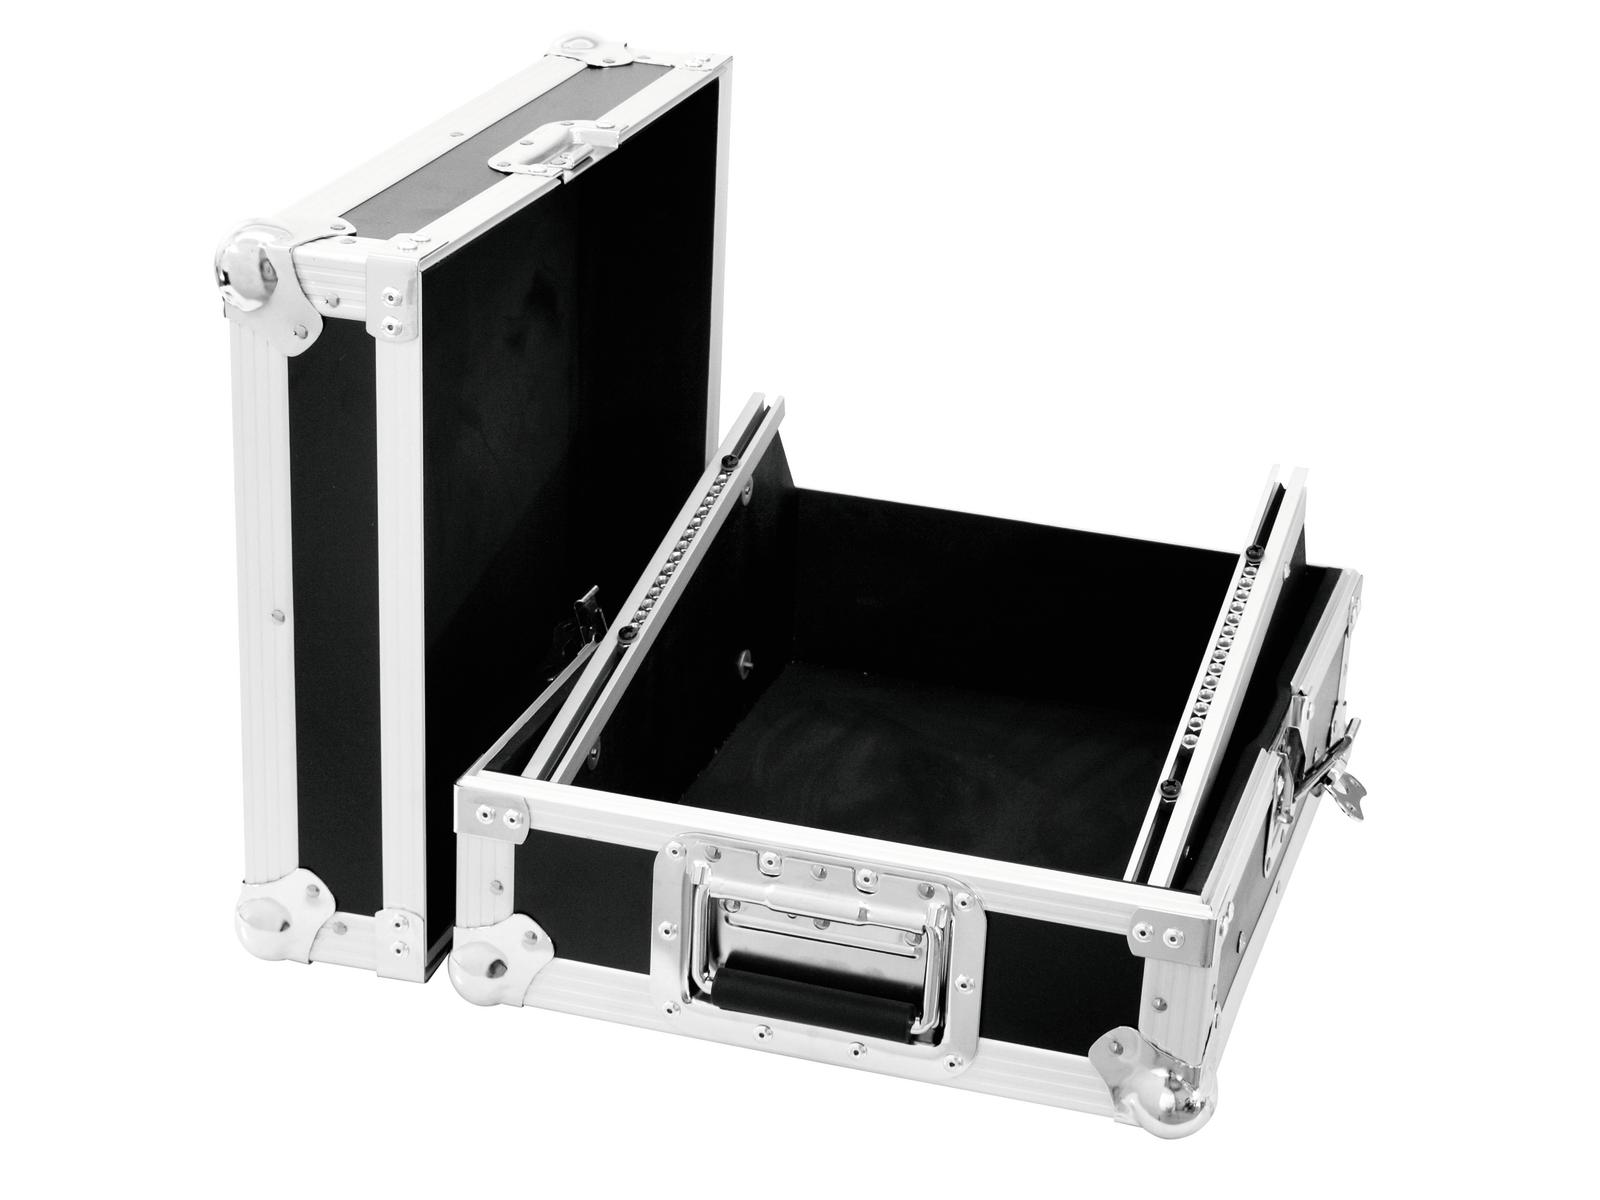 Flight Case Valigia Custodia per Dj Mixer Audio Luci 440 x 380 x 225 mm Roading